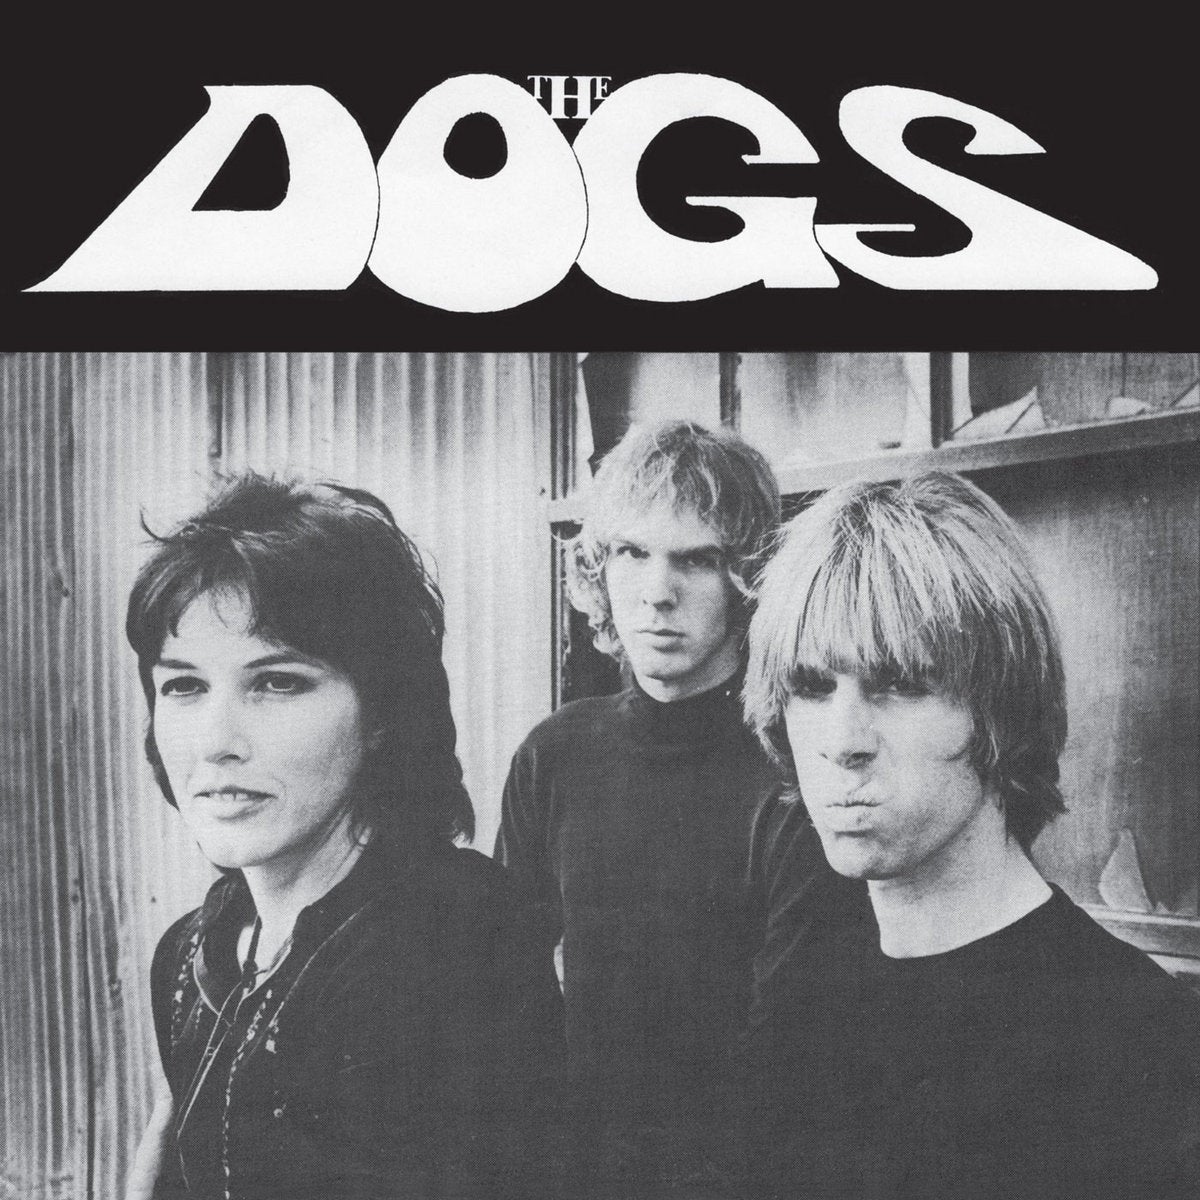 DOGS, THE - Slash Your Face 7